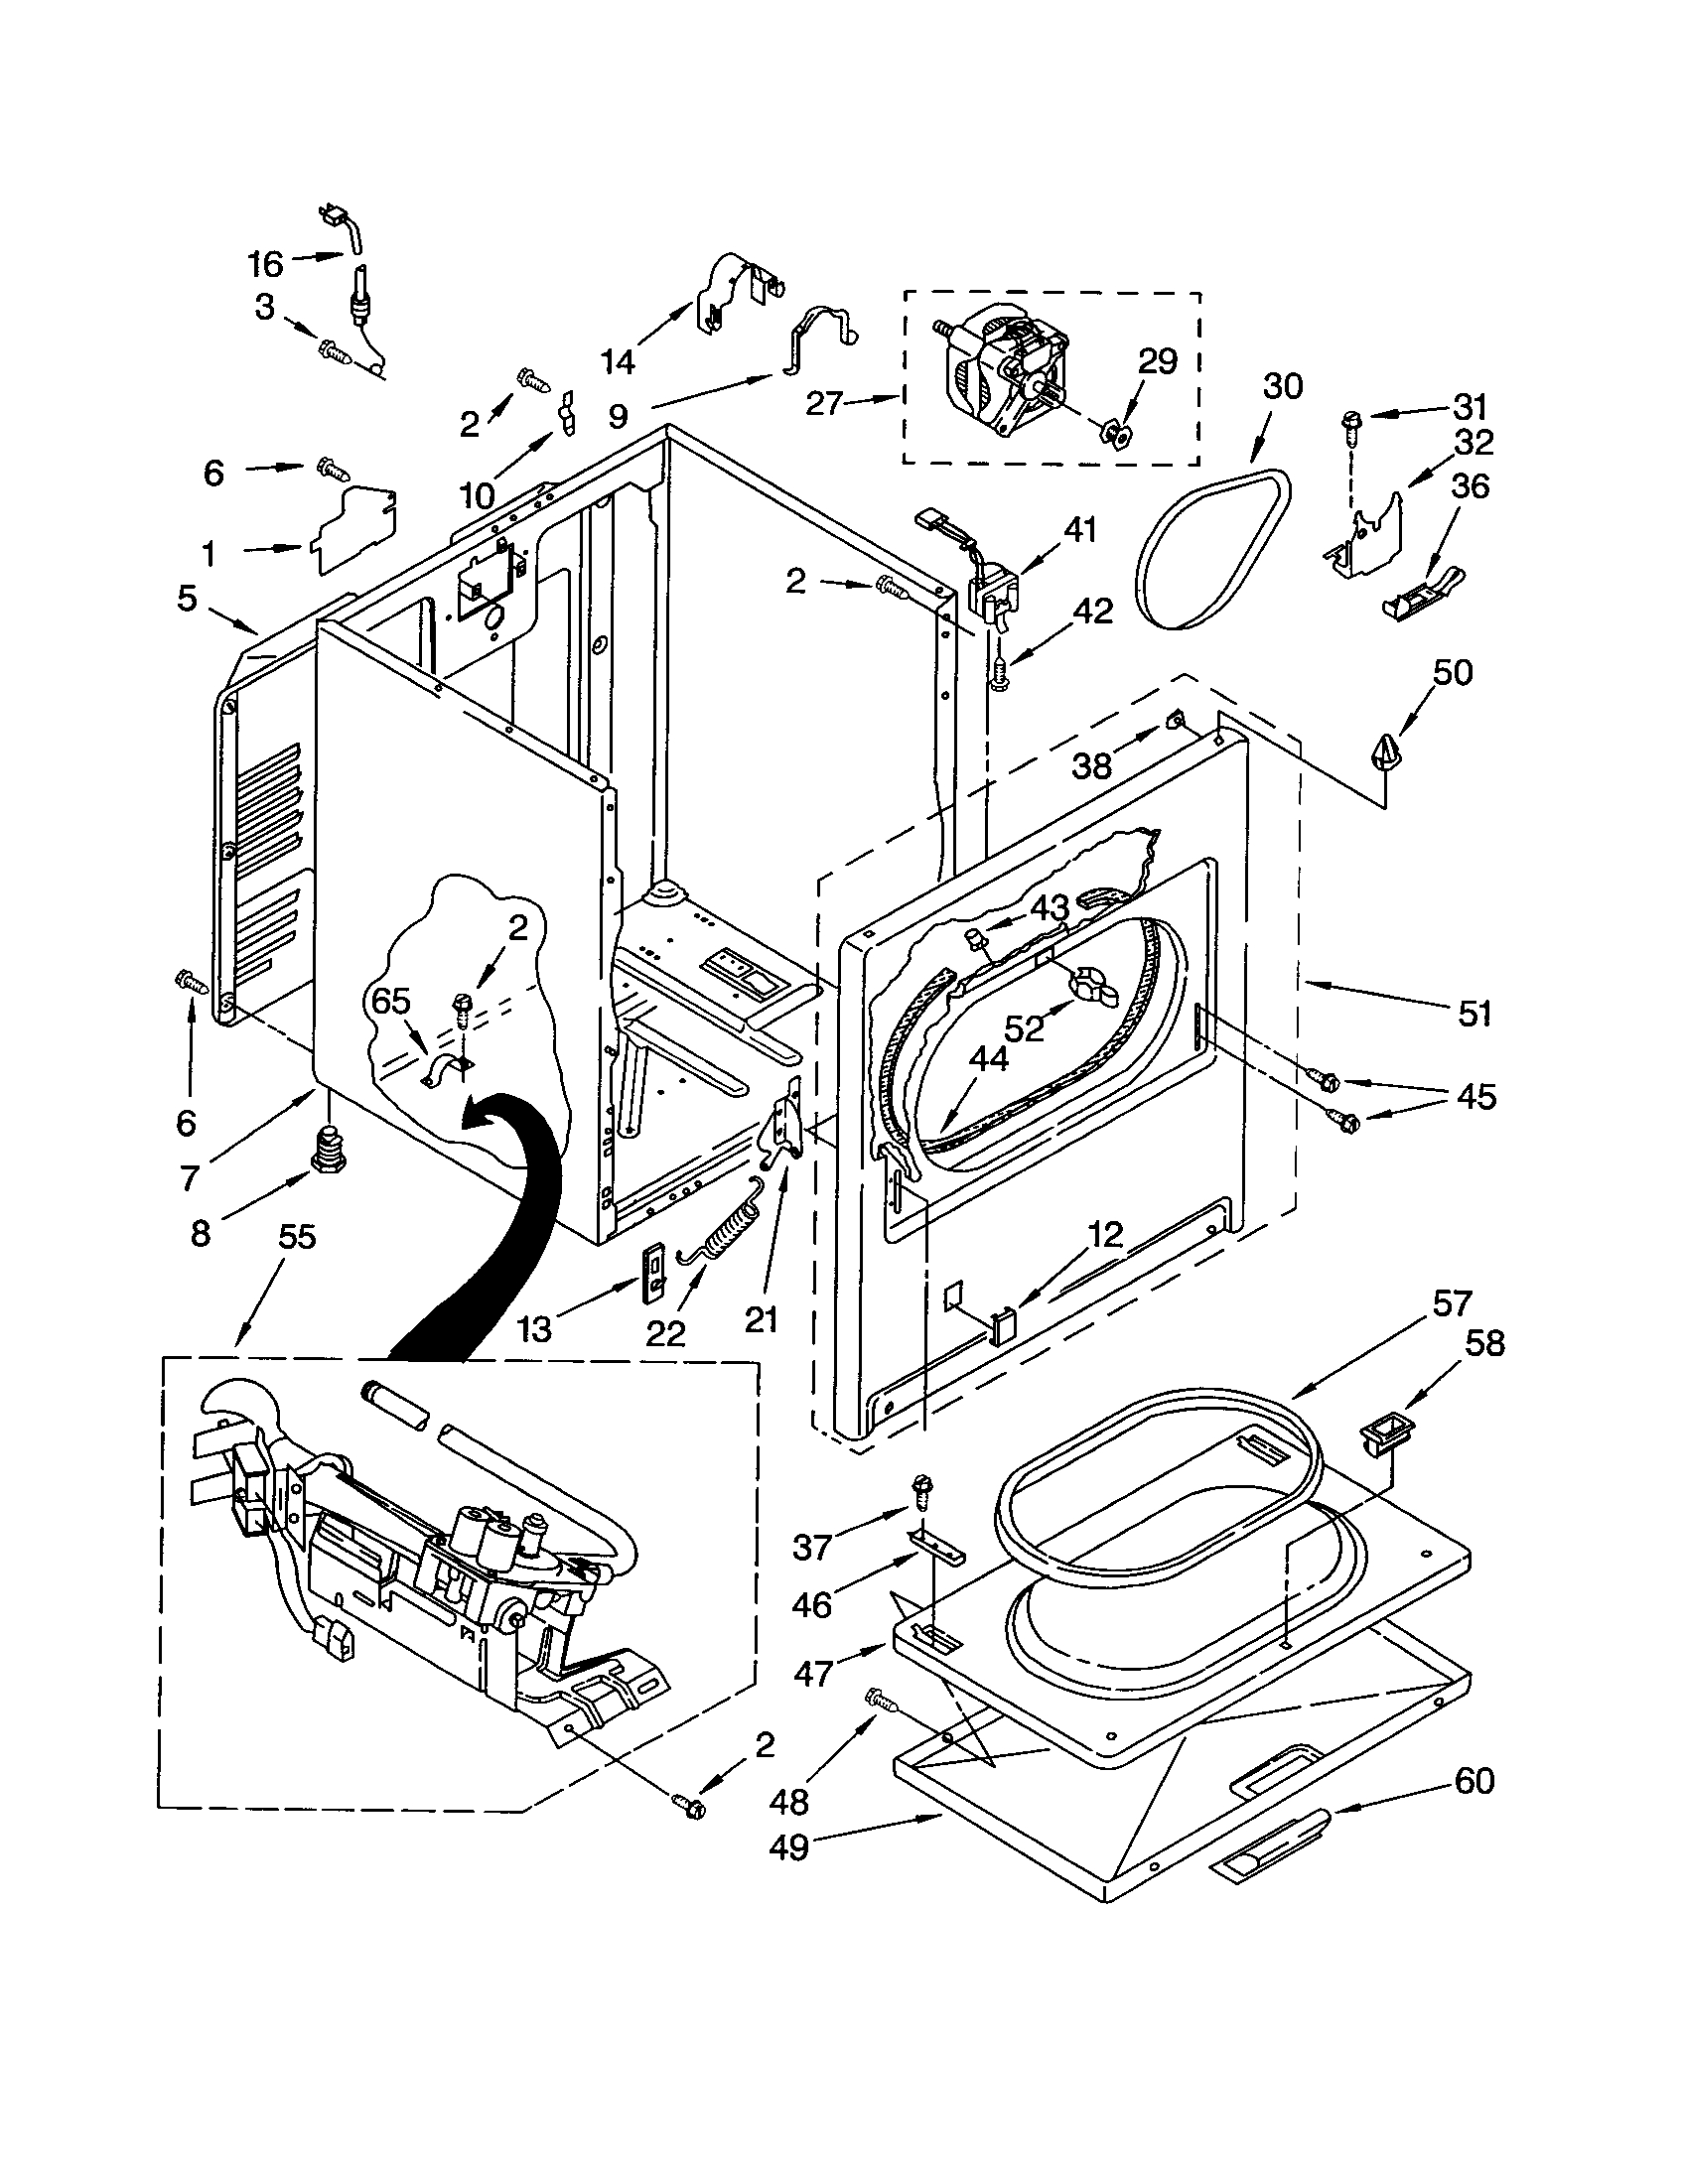 Kenmore 70 Series Dryer Parts Diagram